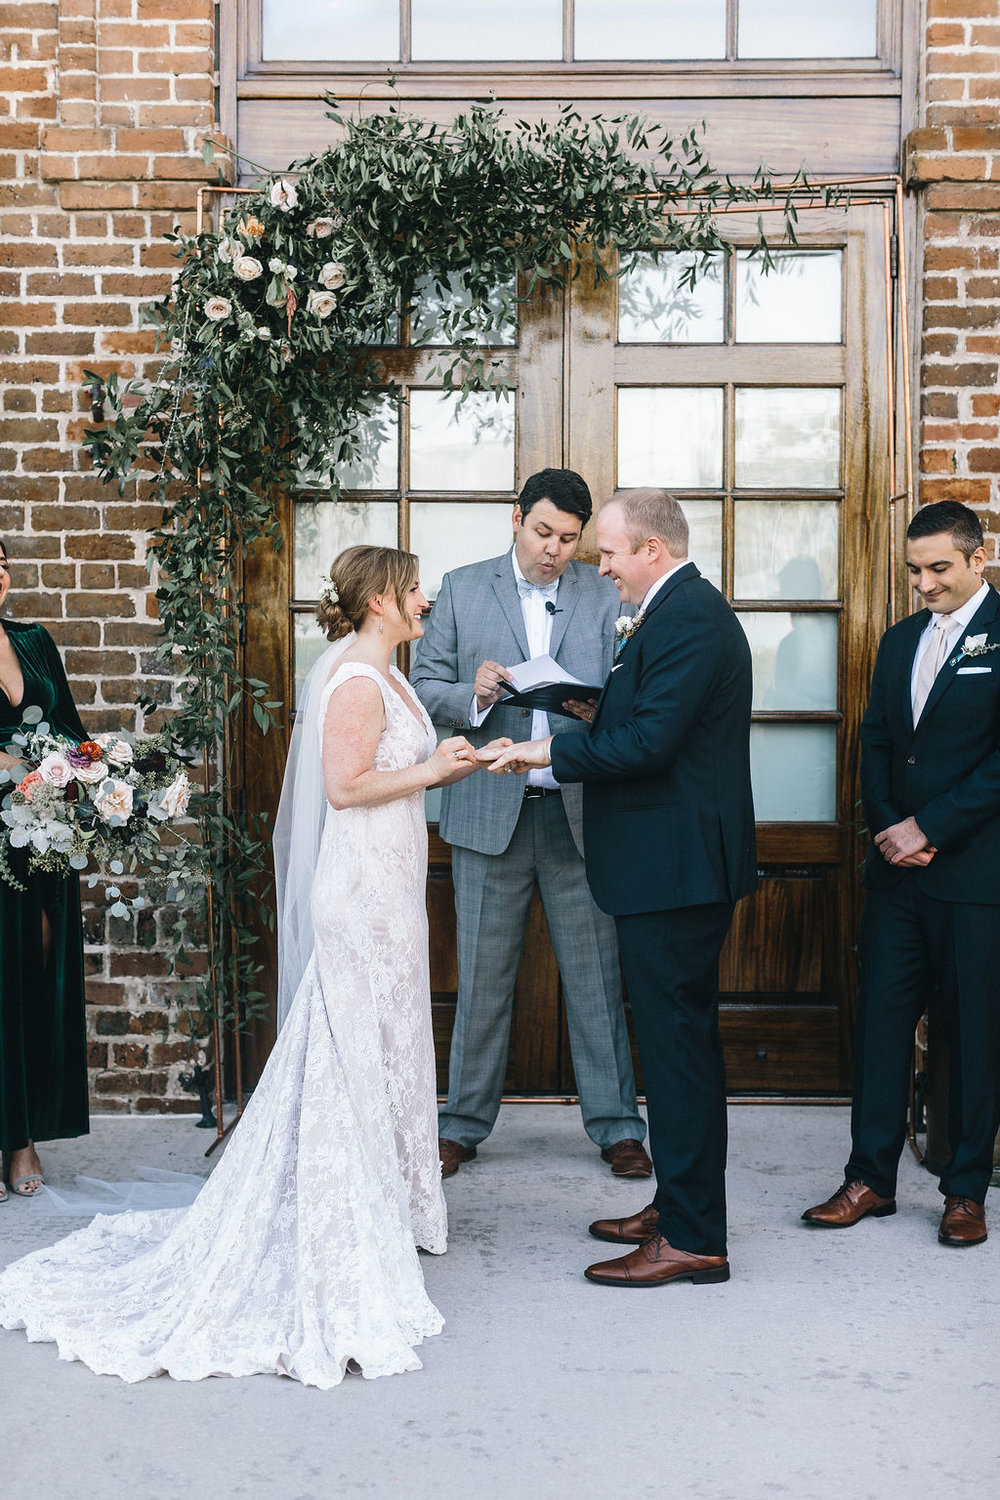 ivory_and_beau_savannah_bridal_shop_ivory_and_beau_couple_regan_and_brian_mackensey_alexander_photography_charles_h_morris_center_wedding_savannah_wedding_planner_savannah_florist_24.jpg